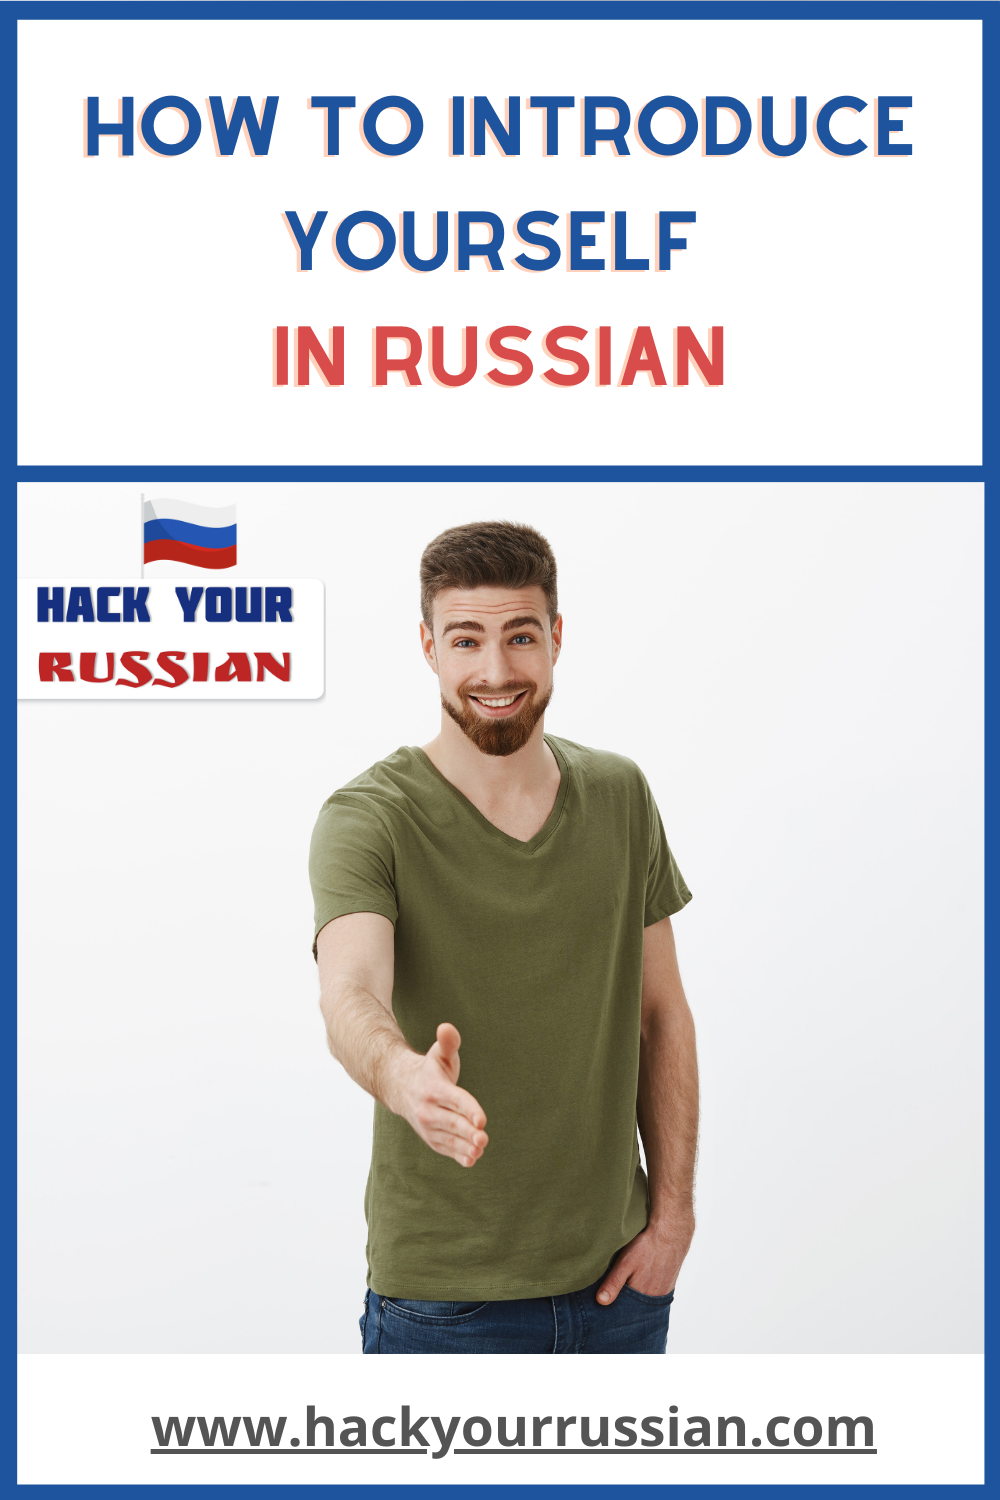 How to introduce yourself and others in Russian - Key Russian phrases